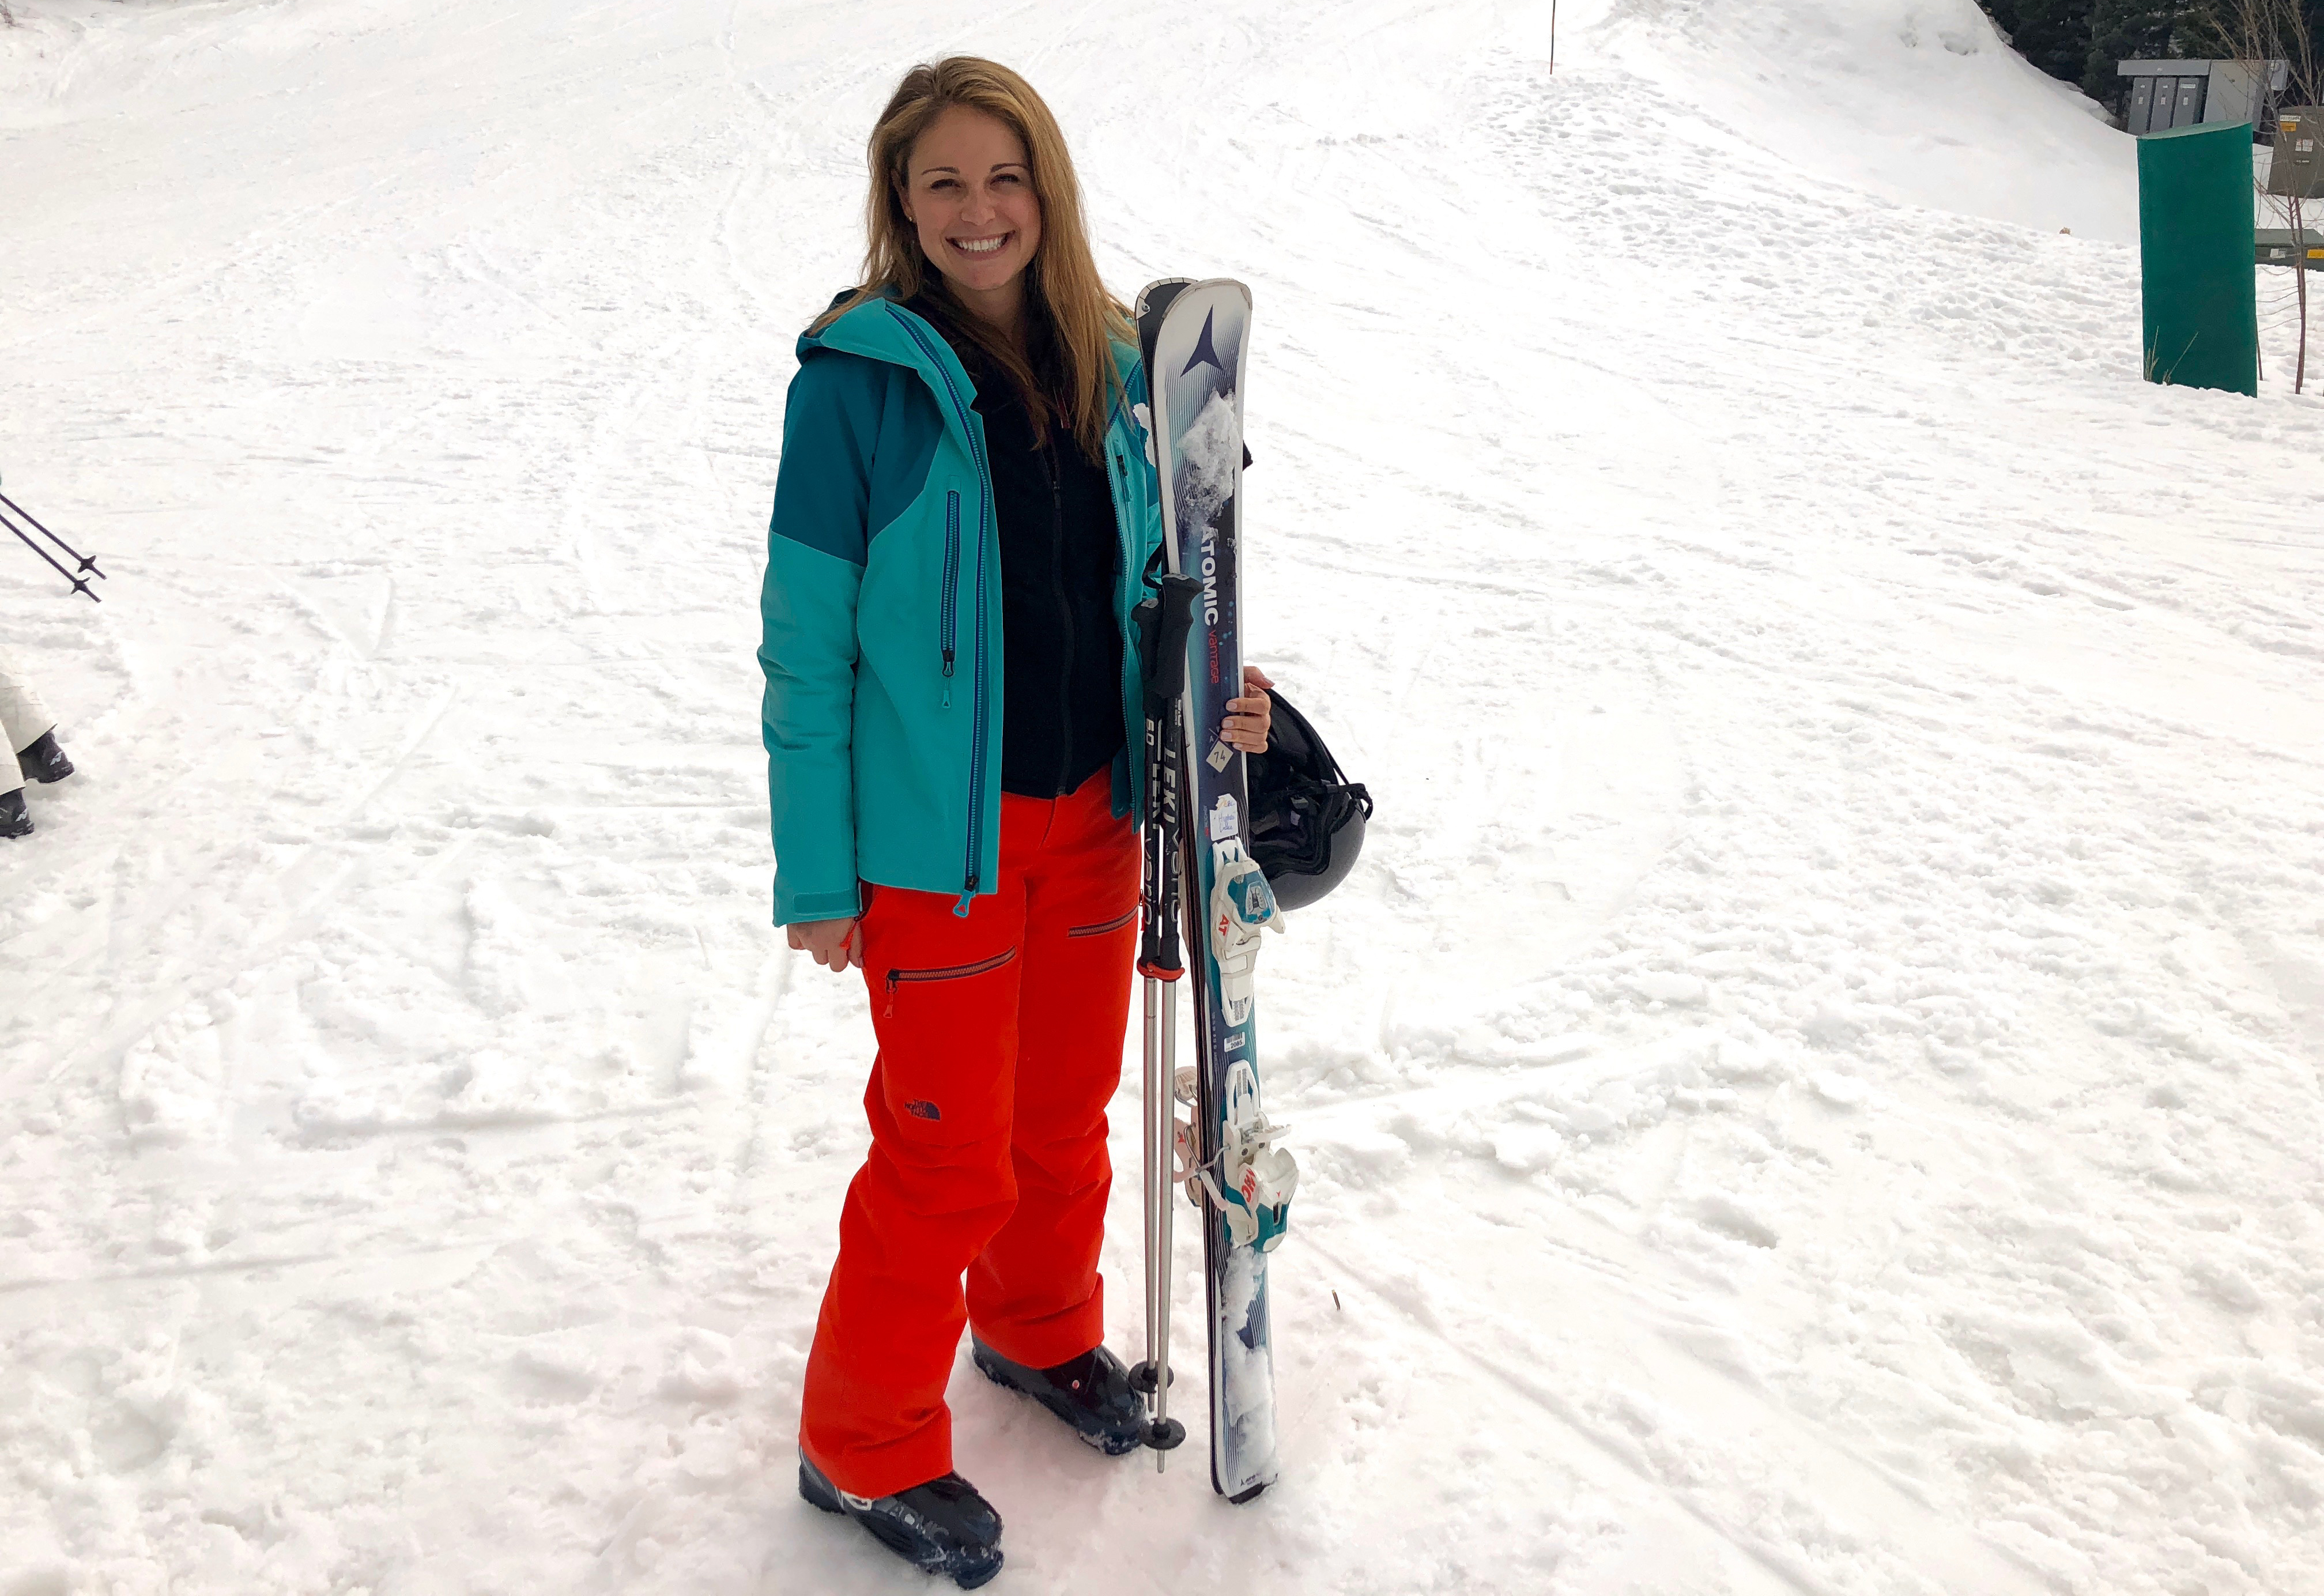 bf7296d2b4 Life Lessons I Learned From Skiing for the First Time at 29